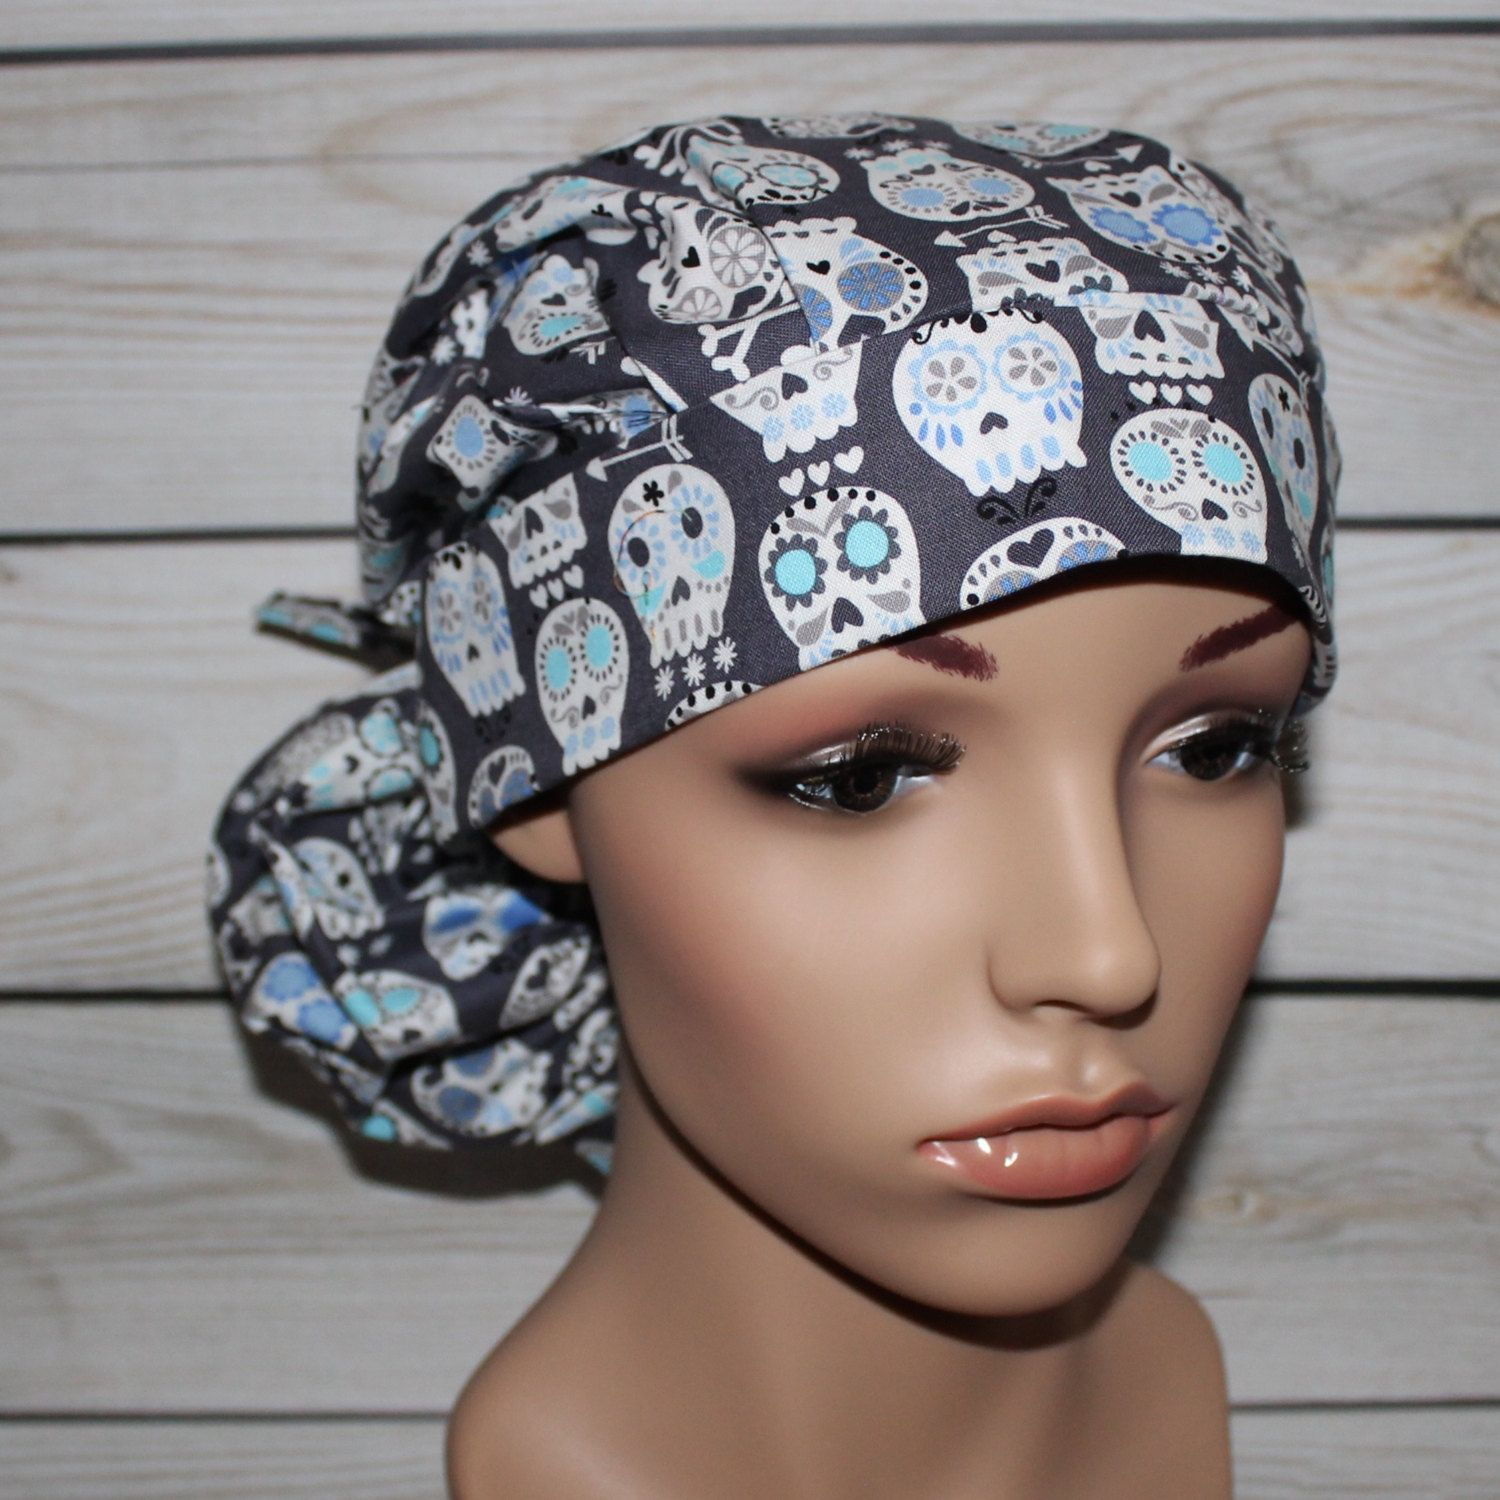 2bfbfe2714a Ponytail Surgical Scrub Hat with fabric tie